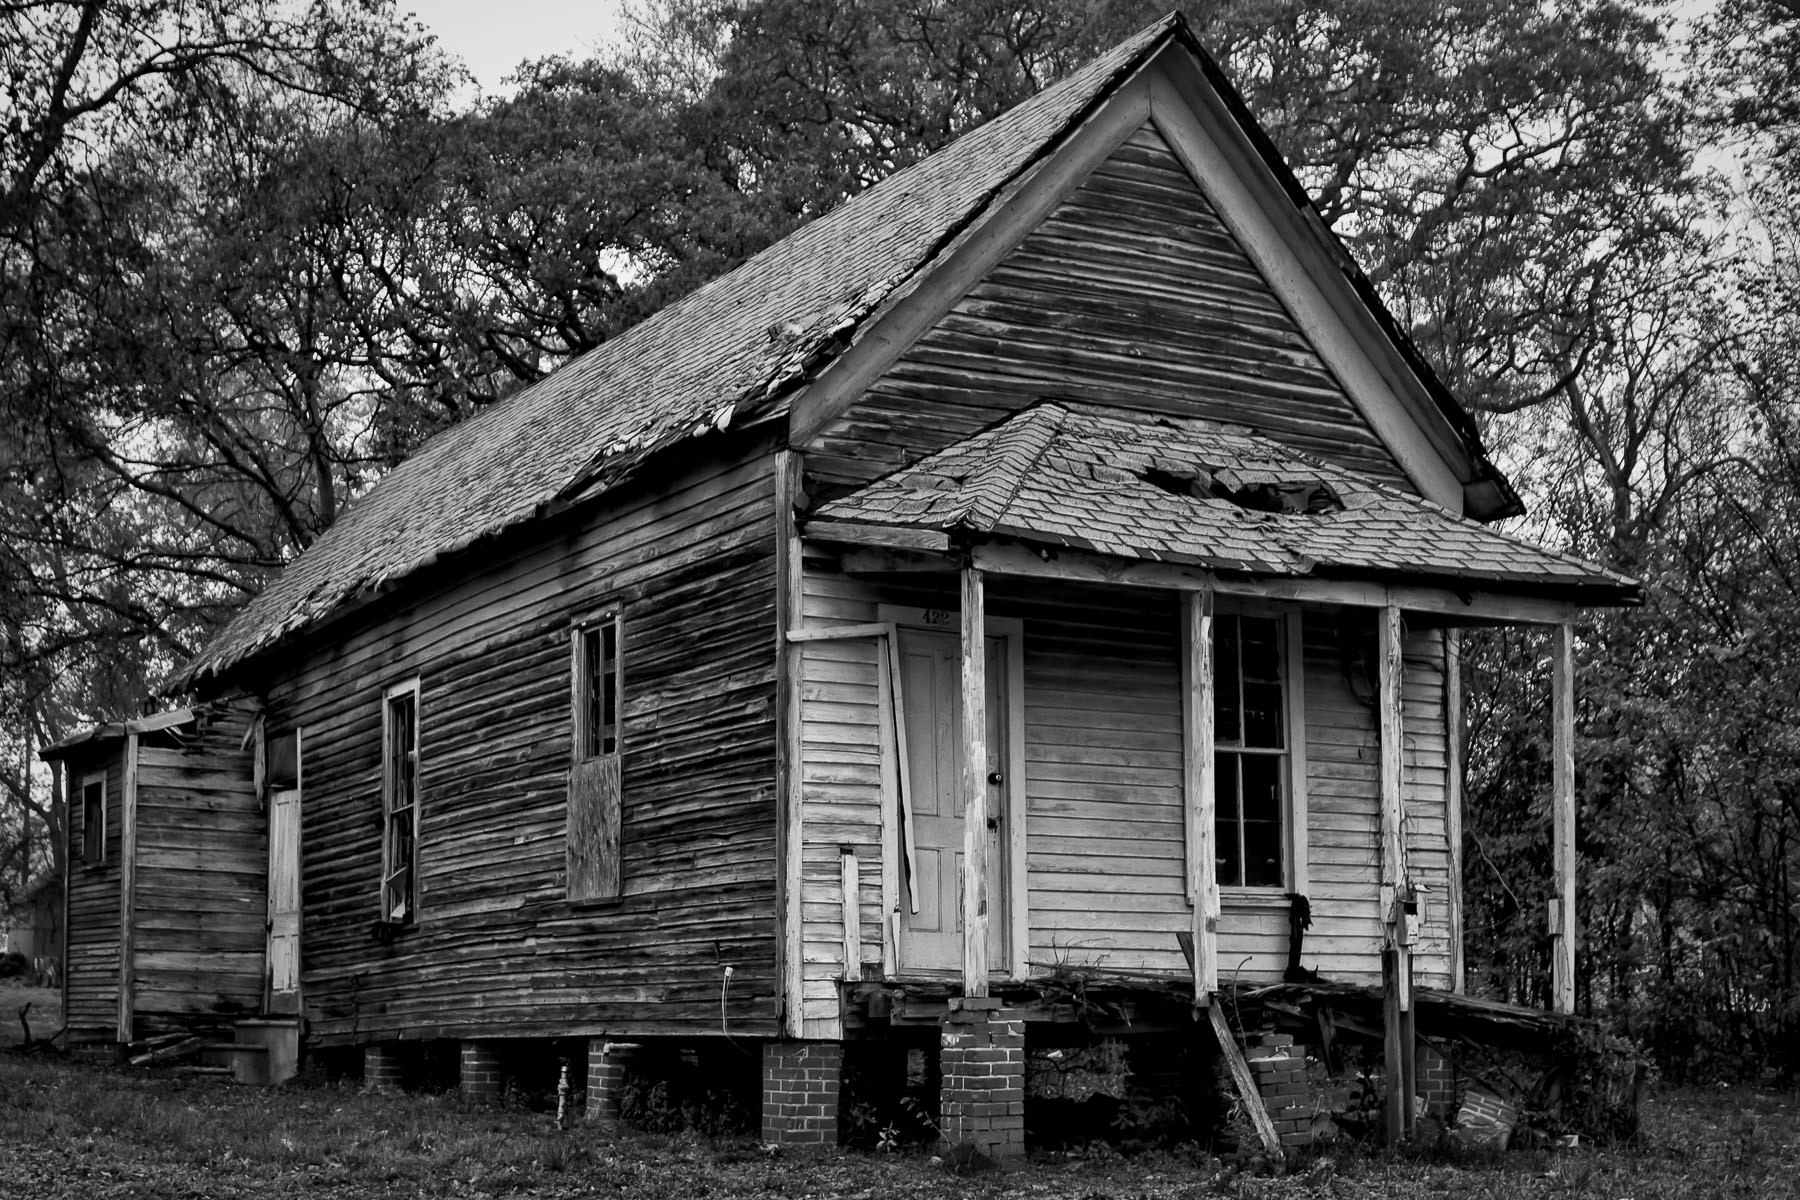 A decaying house found on the north side of Tyler, Texas.